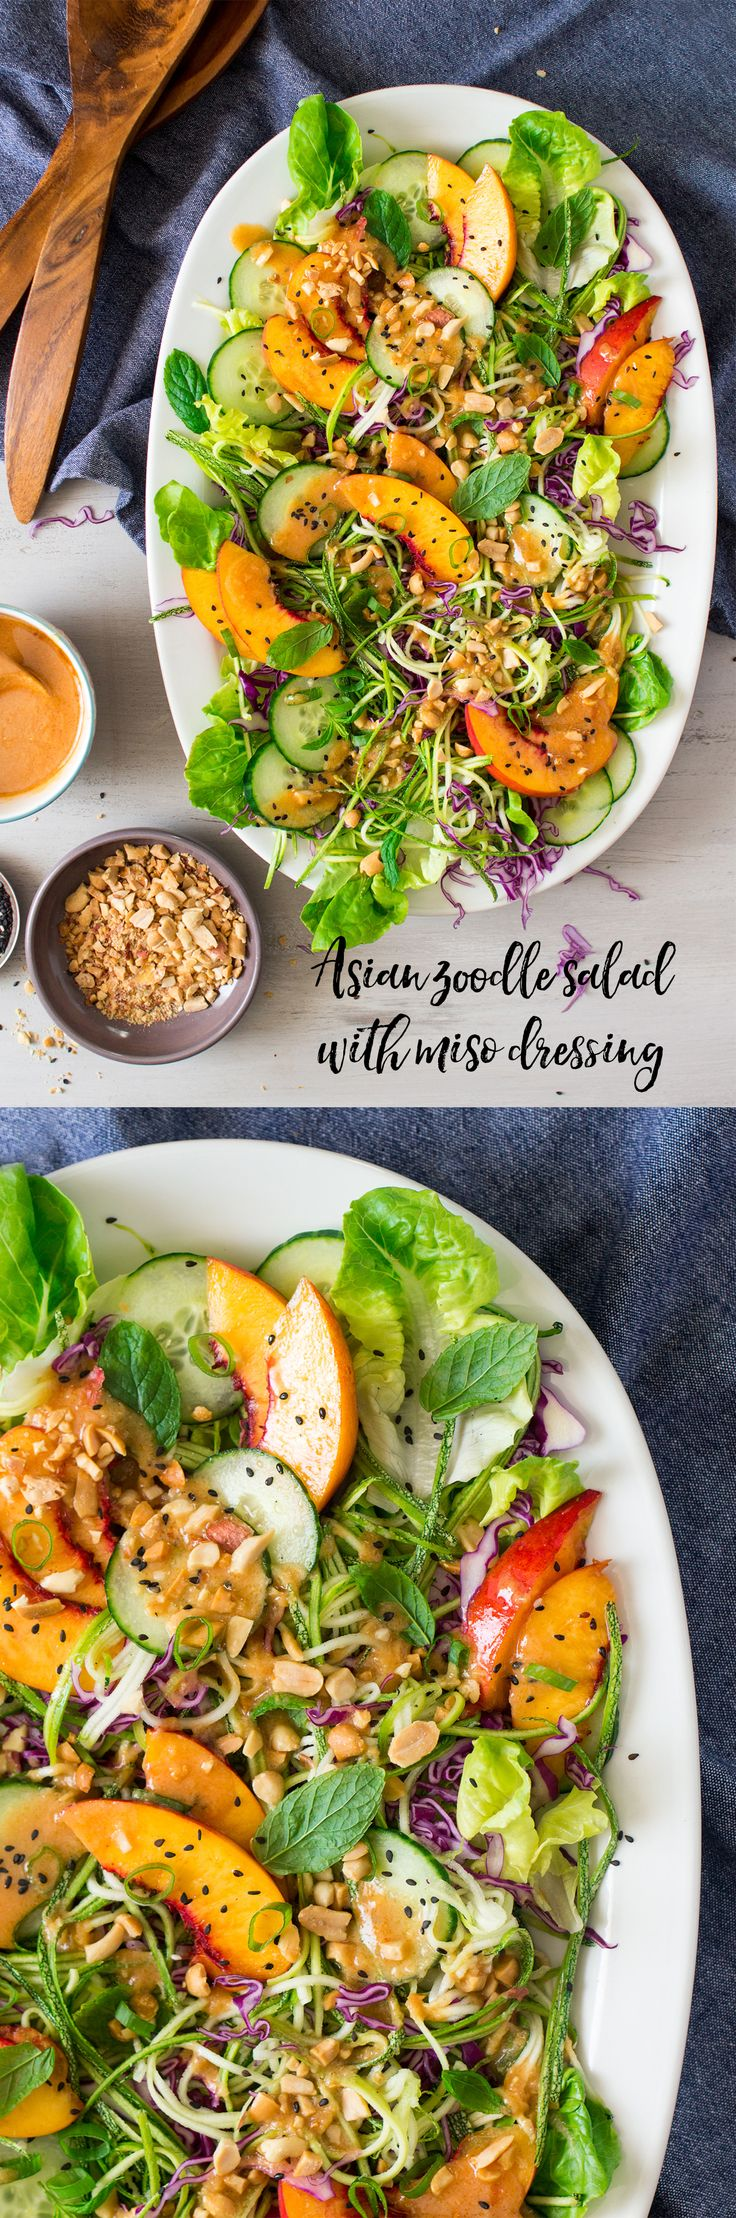 Asian zucchini noodle salad with miso dressing is a great carb-free salad.It's light, fresh and no cook, which is ideal in hot weather.